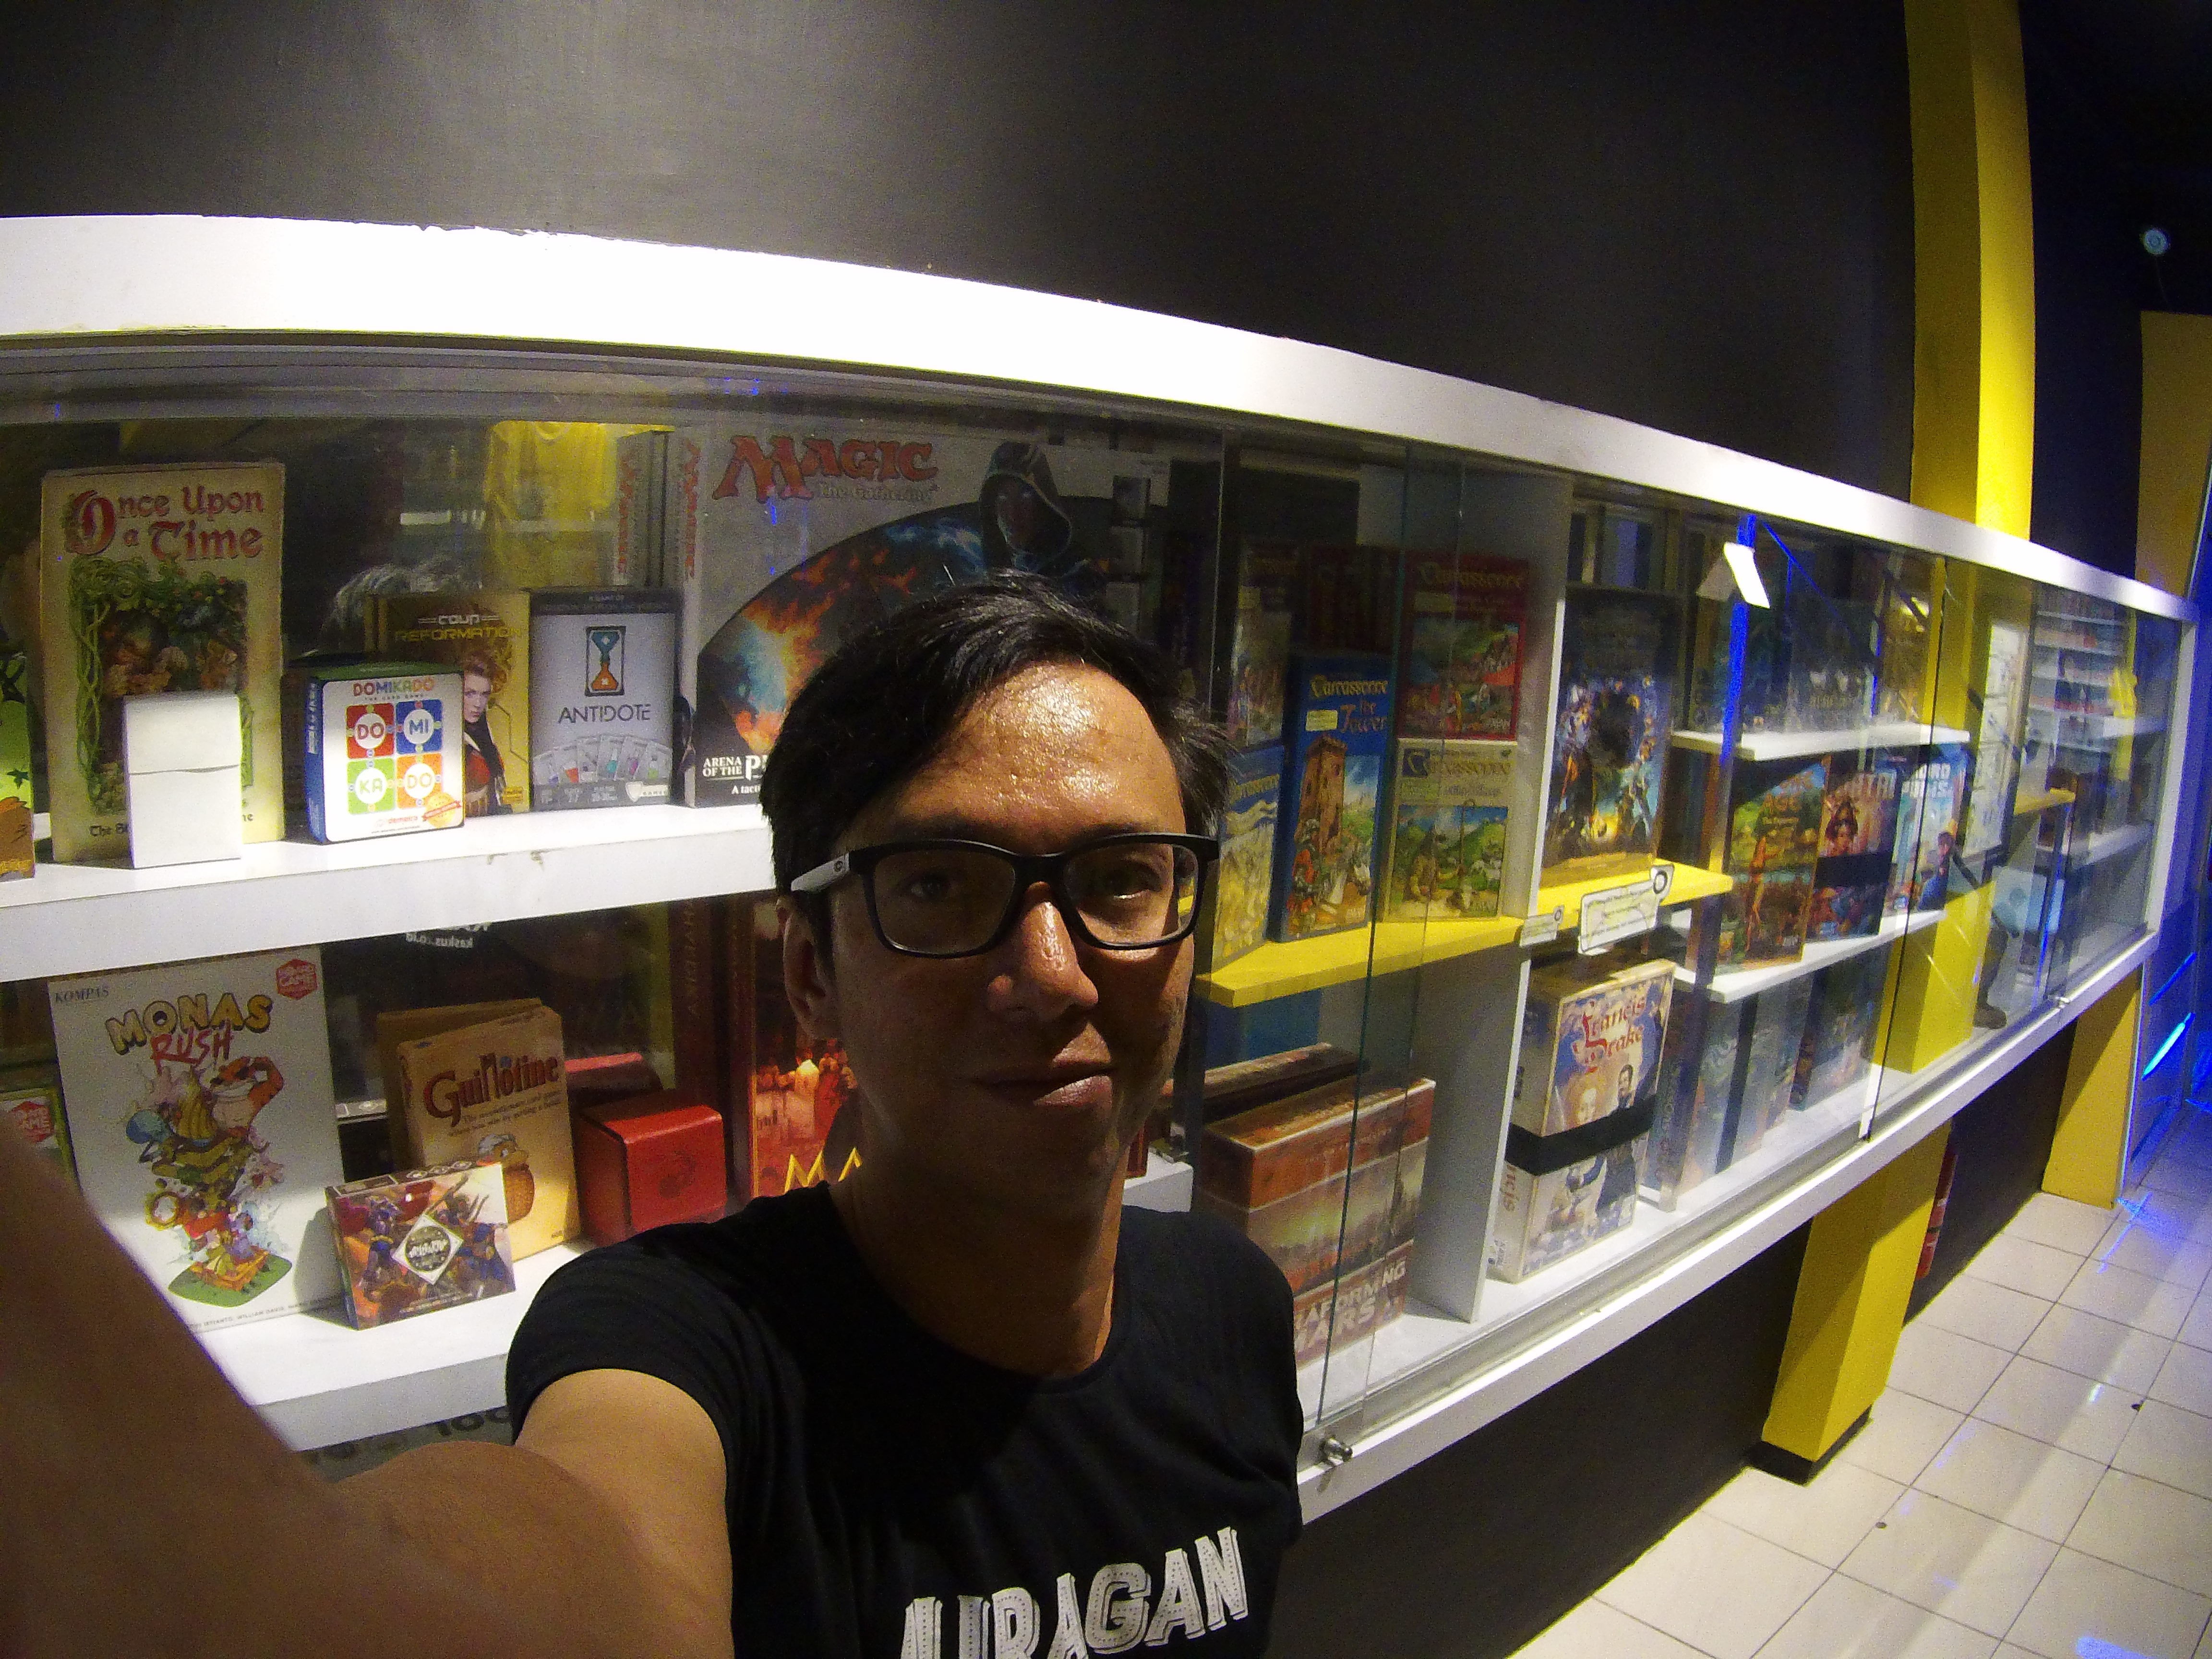 #BestCollection Just me and some of my Collections Board Game